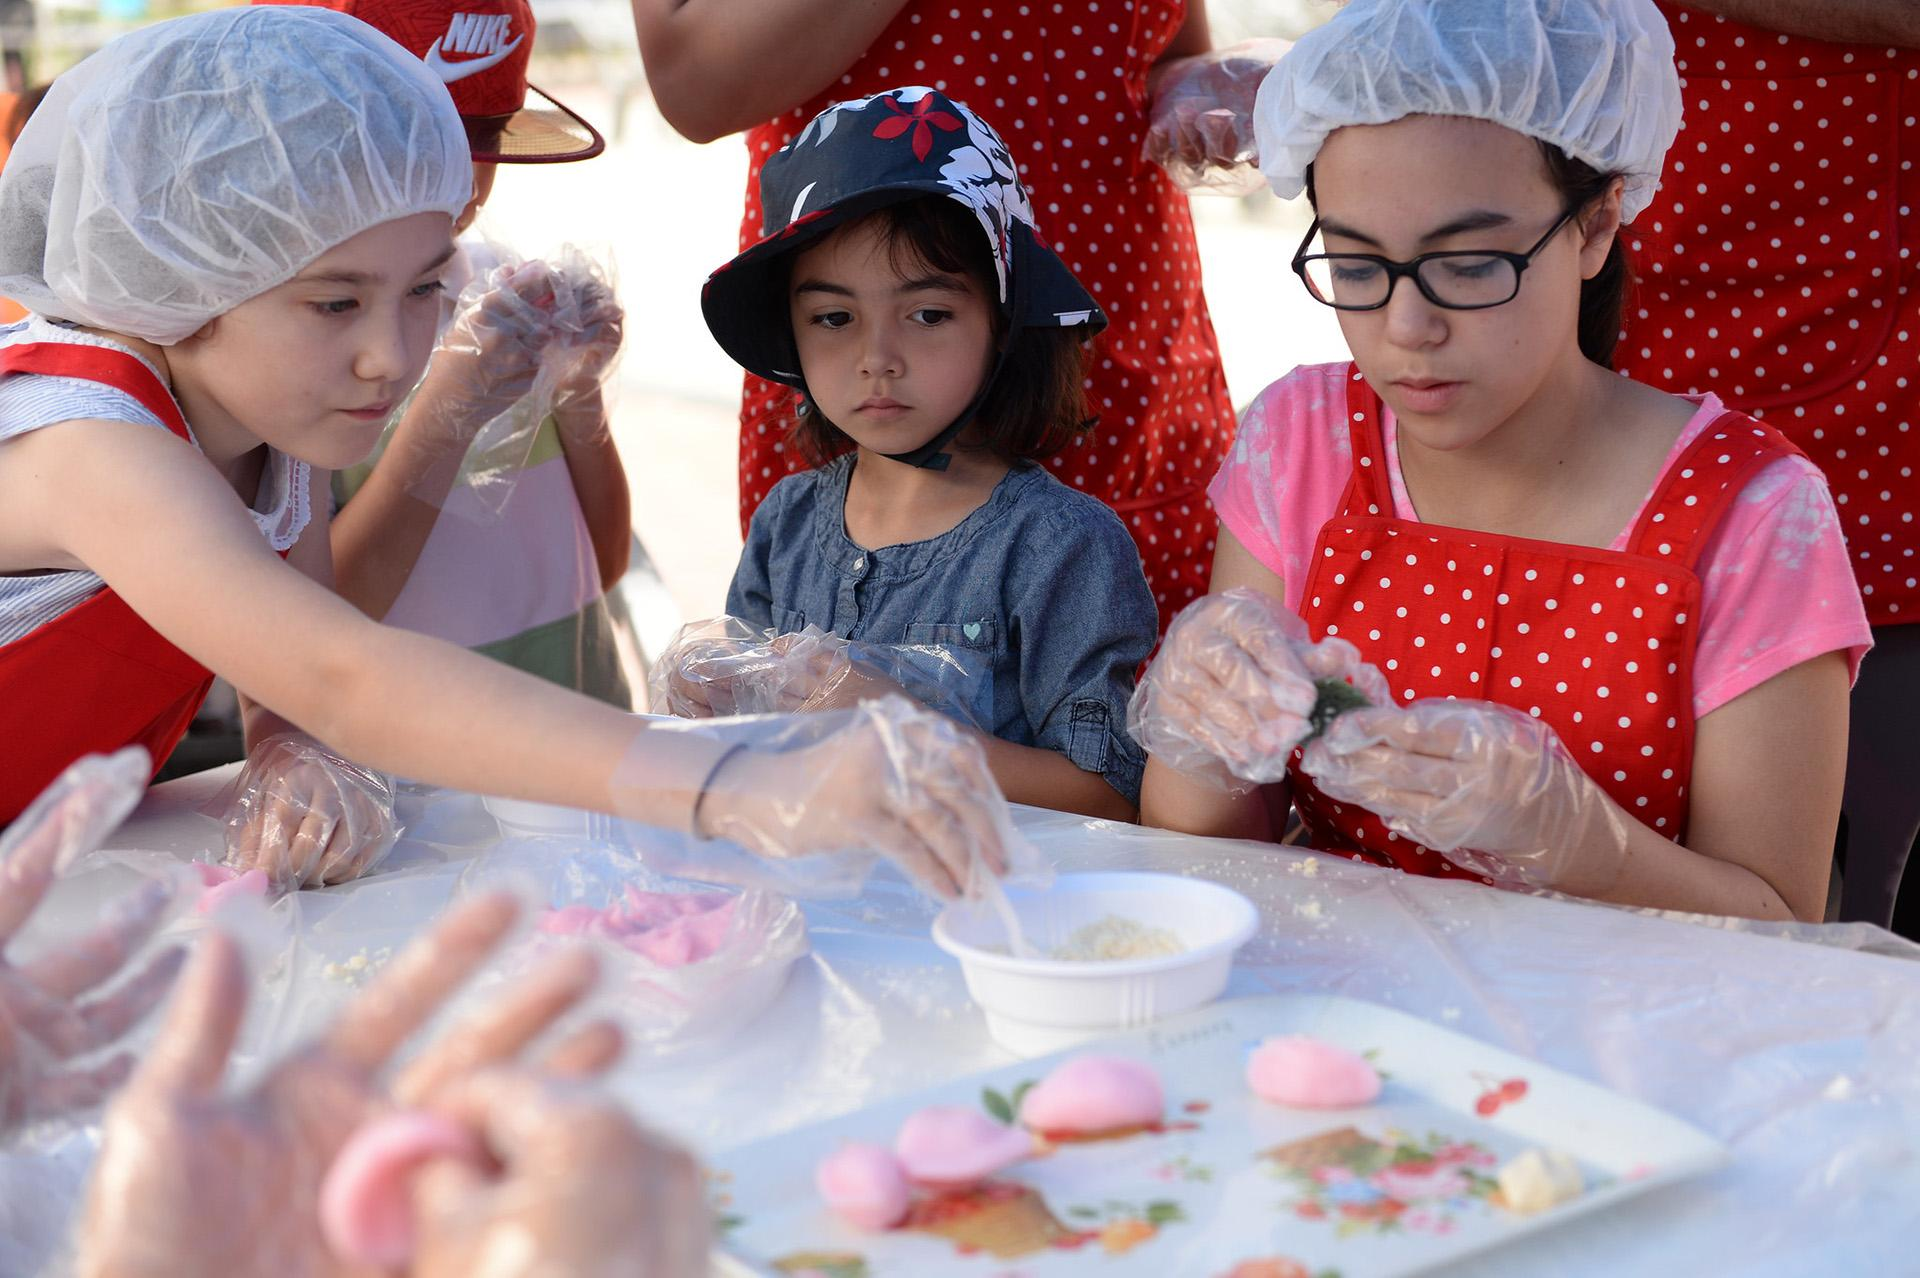 Songpyeon making for Chuseok on Sept. 10, 2016 in South Korea. (U.S. Army photo by Kim, Sung Eun)